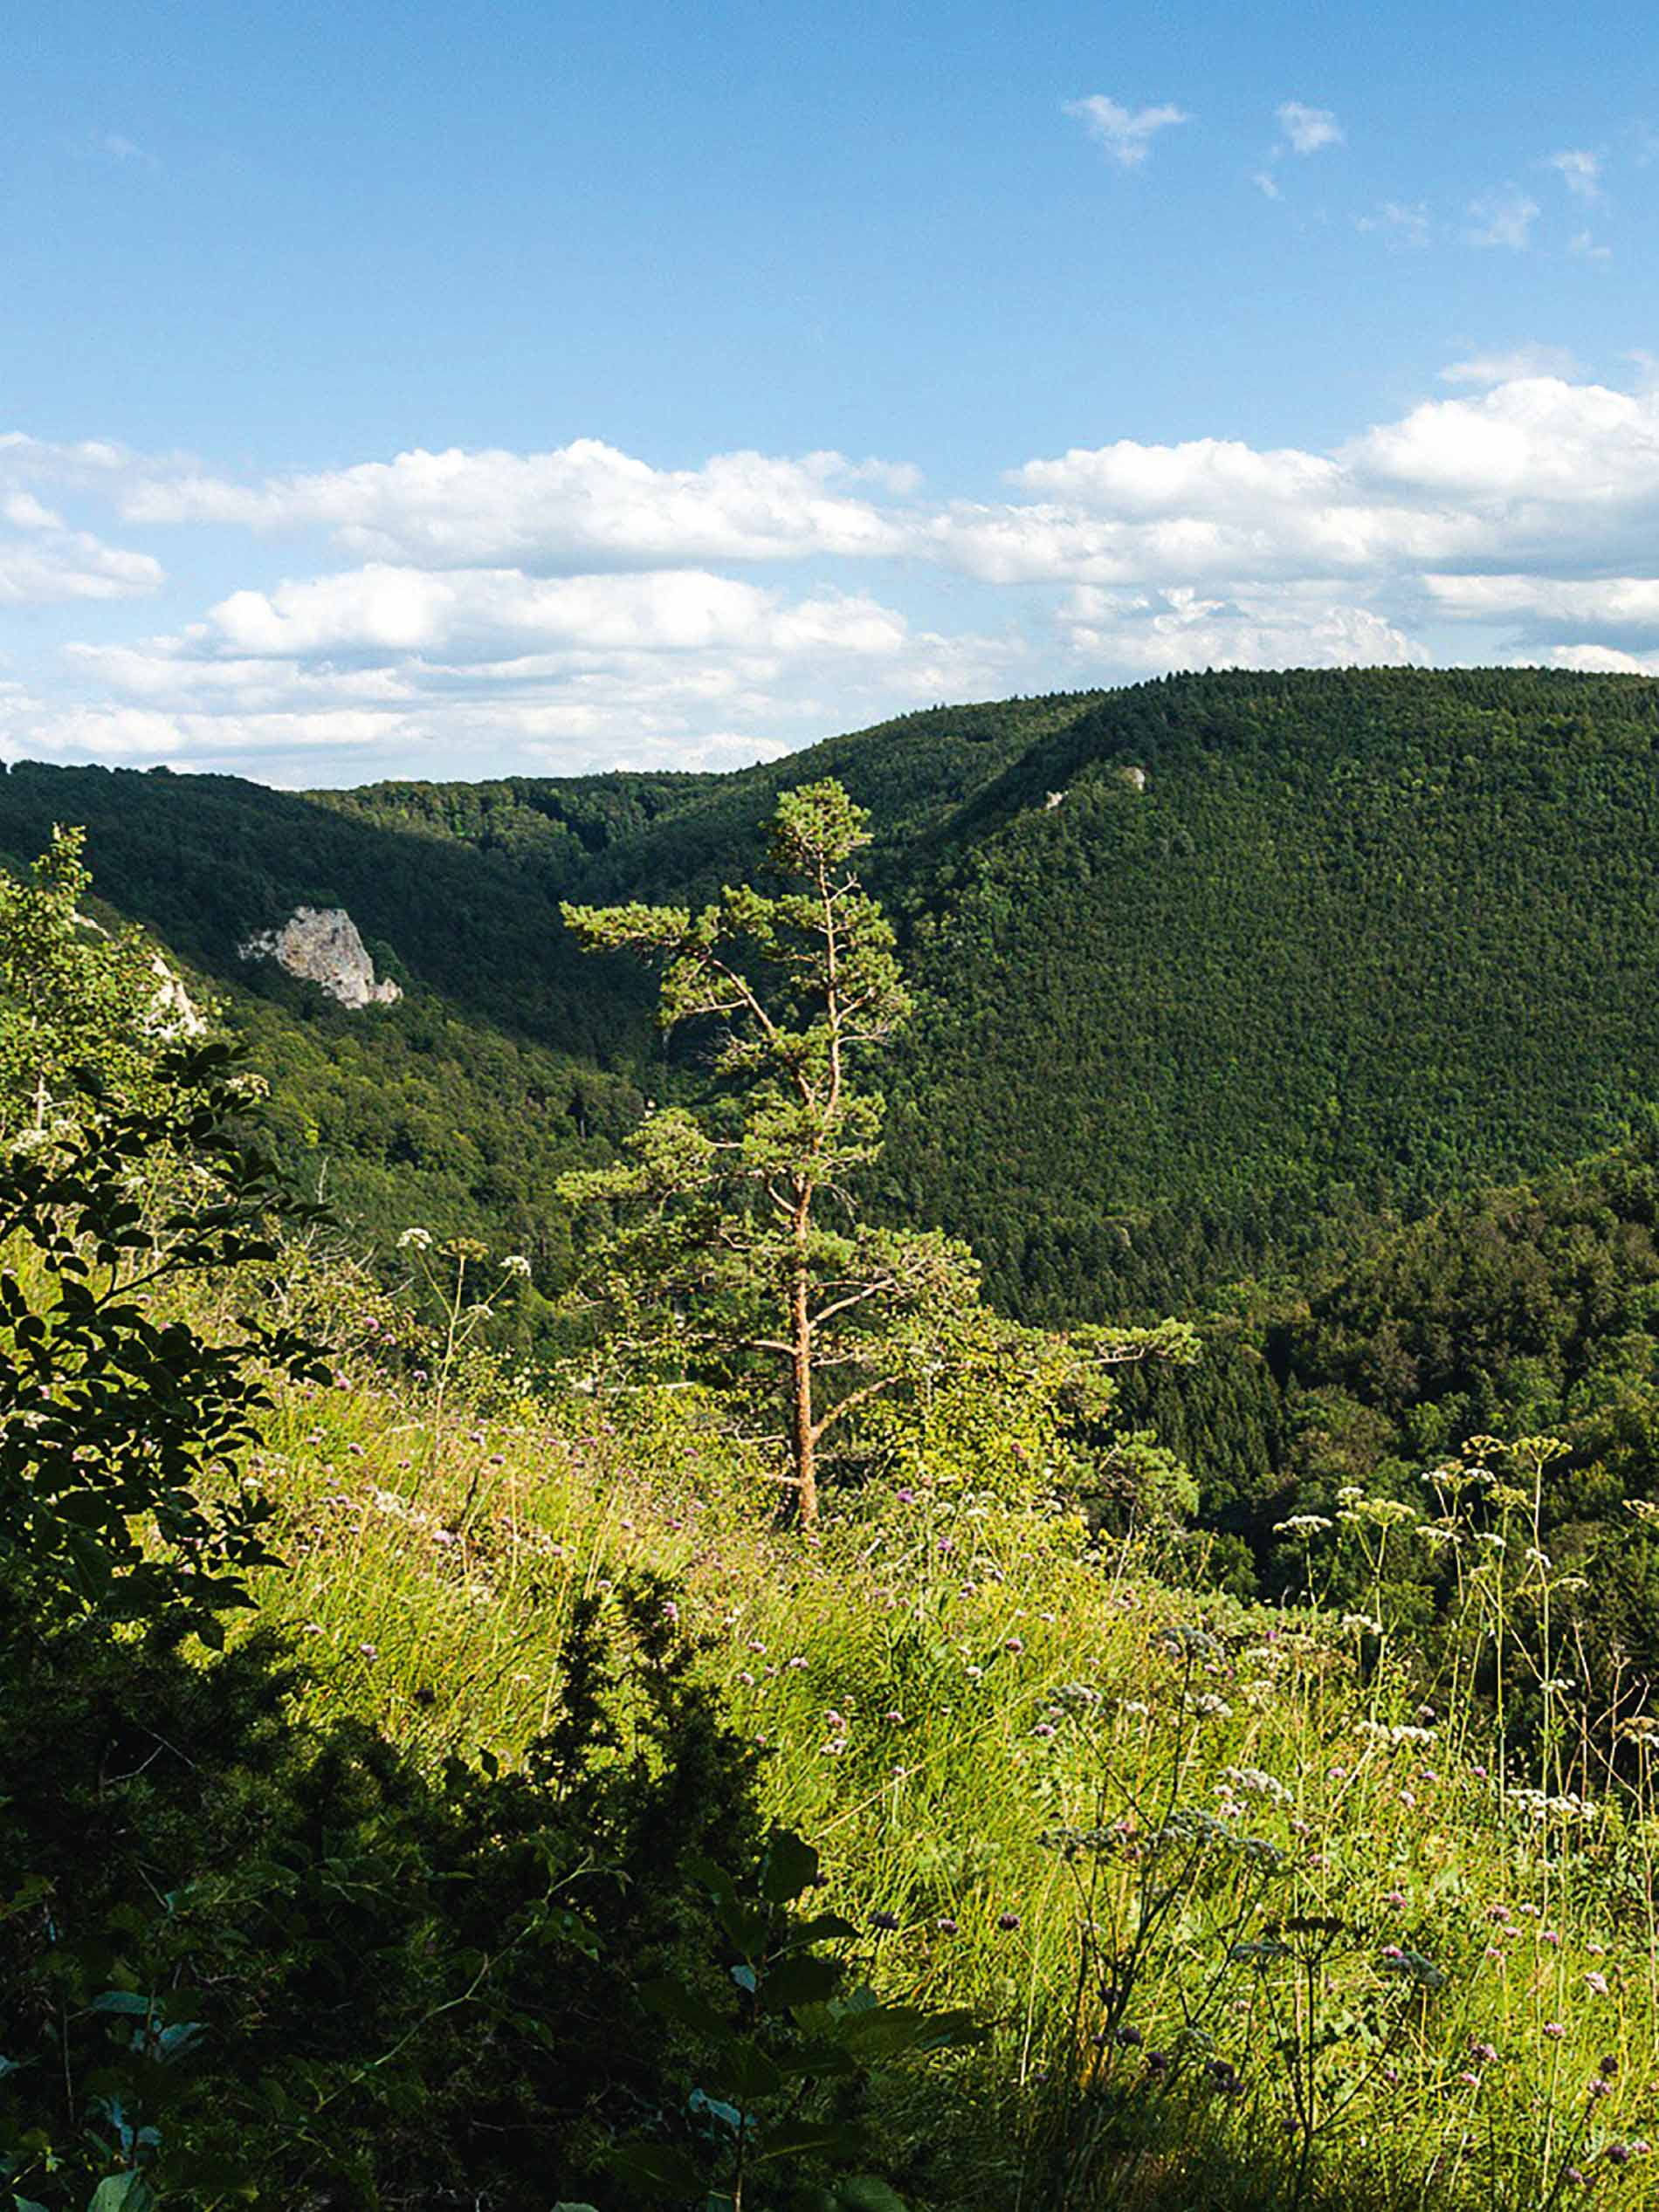 Swabian Jura in the spring with a single, young tree in the foreground   mey®